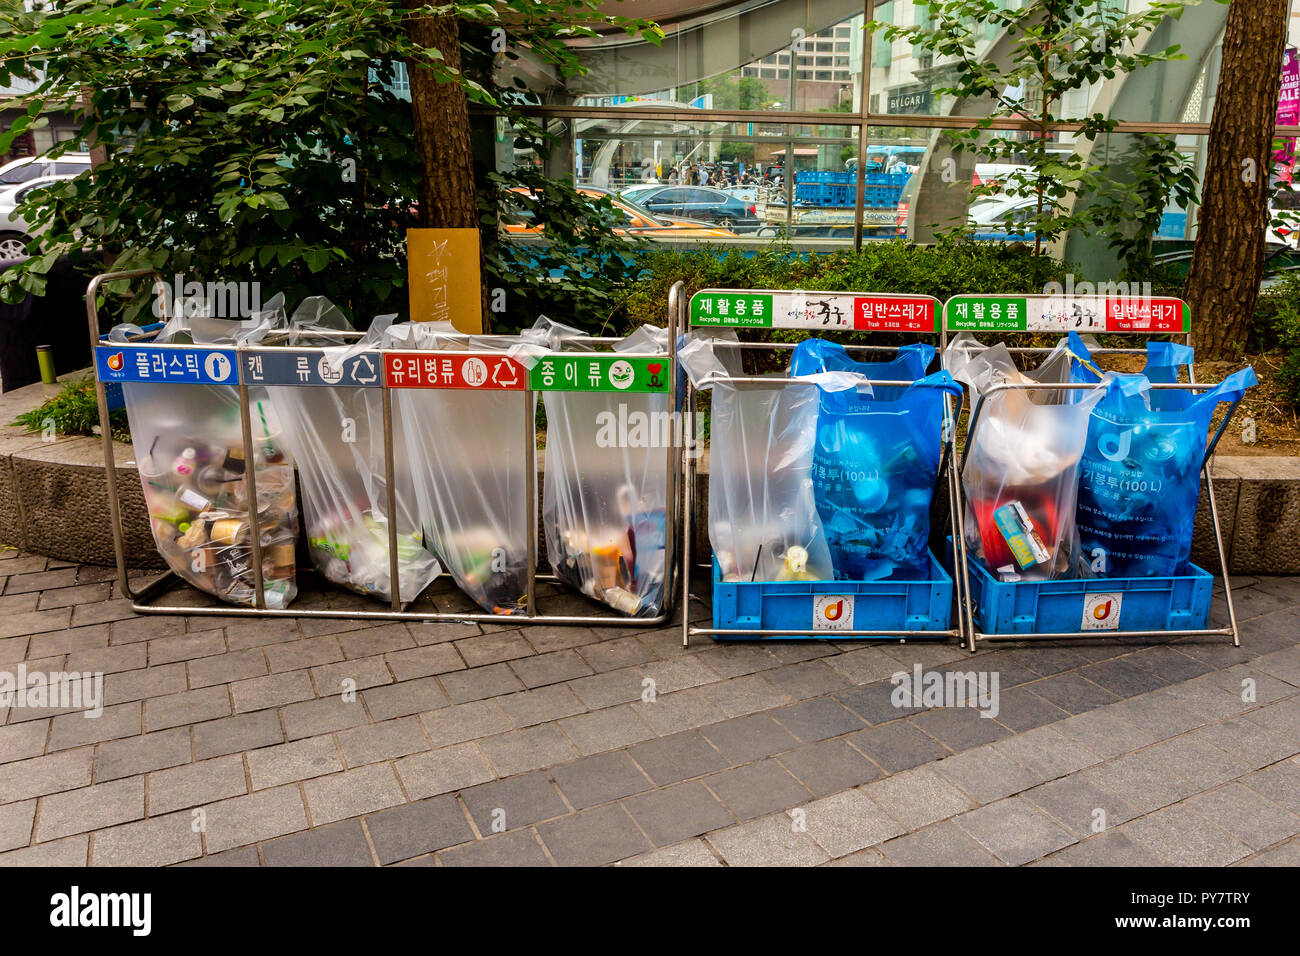 Seoul, South Korea - June 20, 2017: Waste sorting containers with colored inscriptions for plastic, glass bottles and paper in the downtown in Seoul. Stock Photo